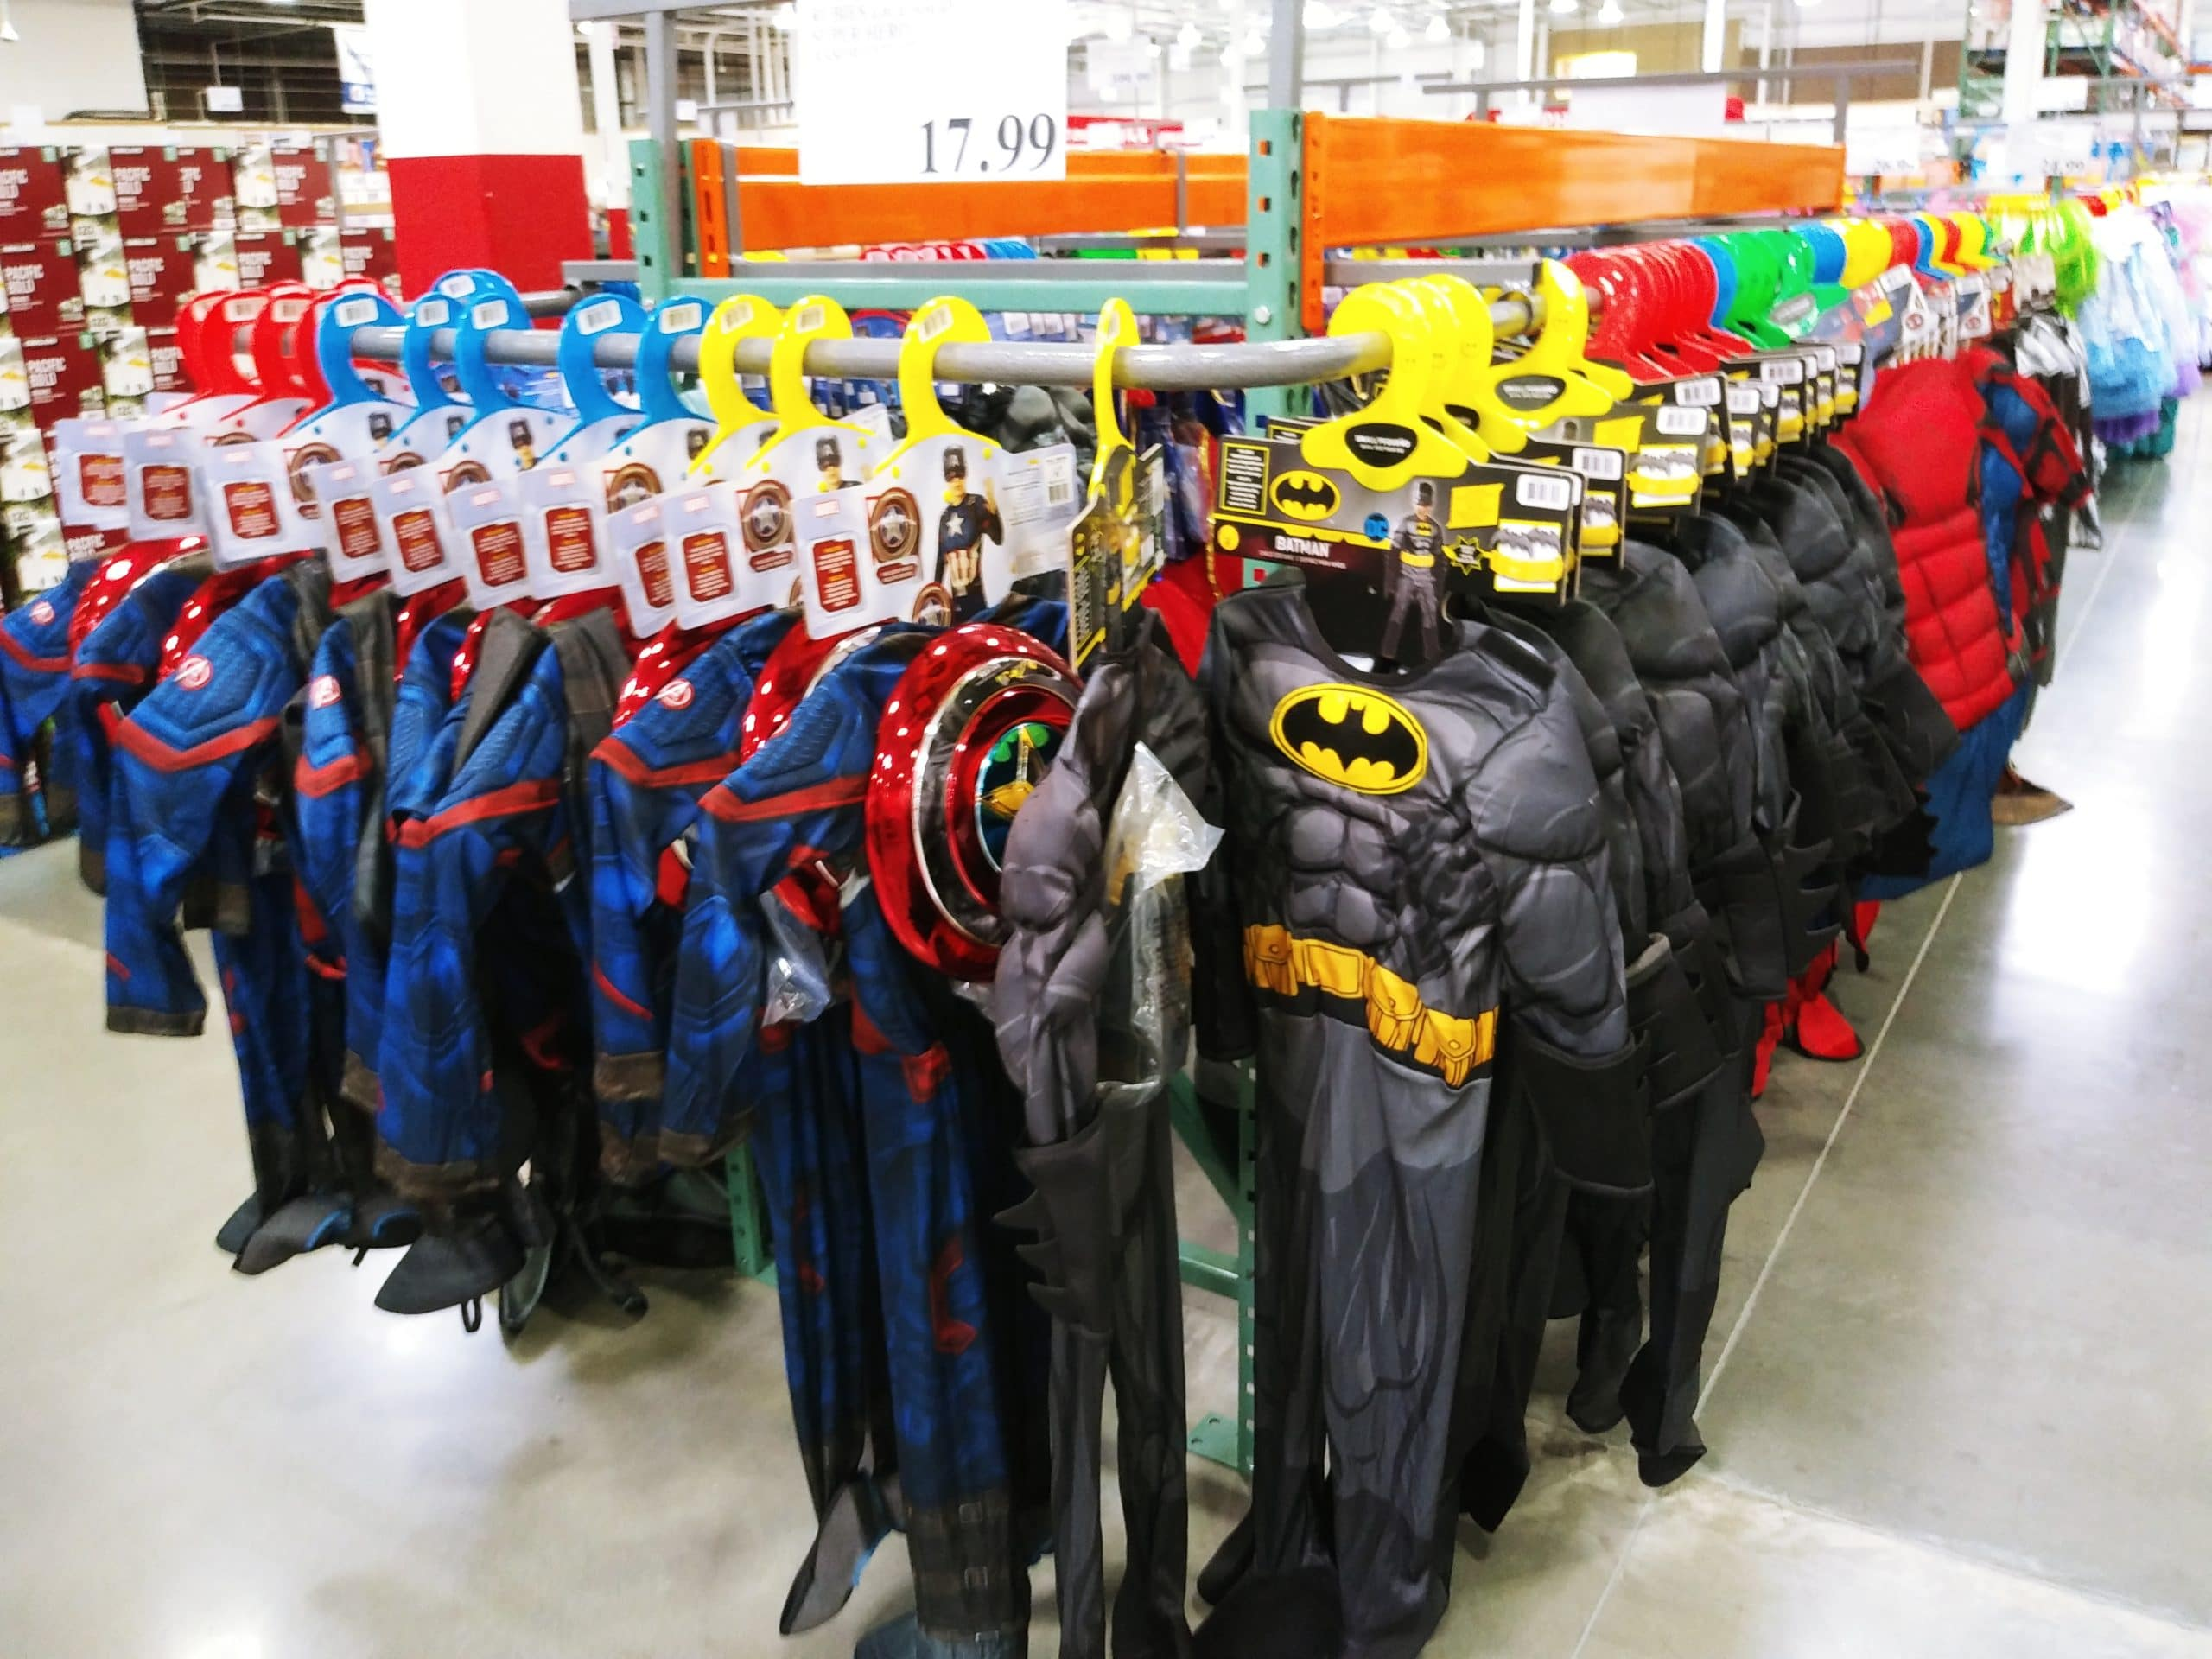 Select Halloween Costumes $18-$27 at Costco